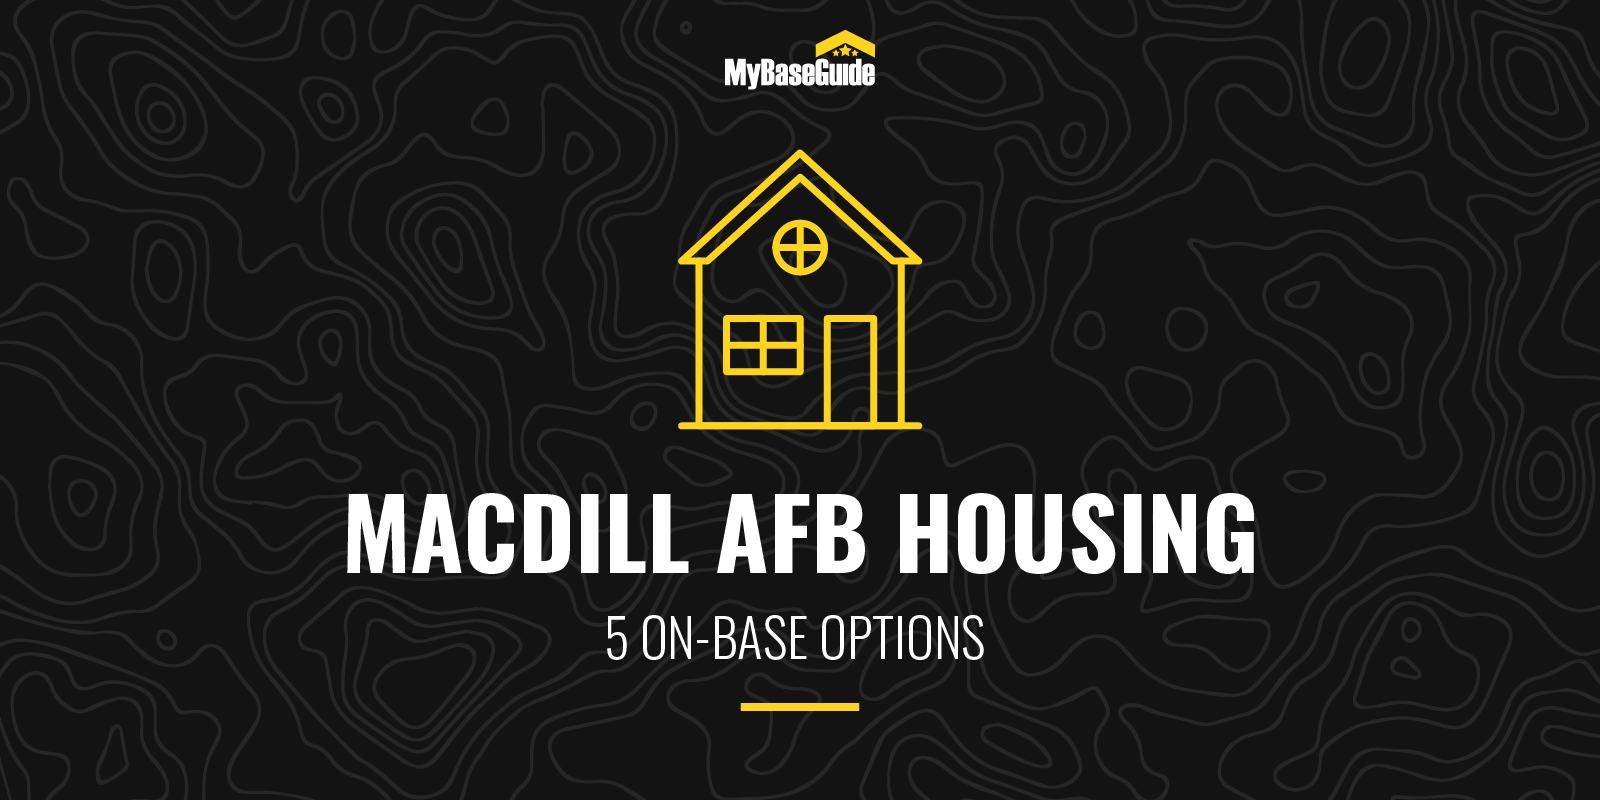 MacDill AFB Housing:5 on-base options